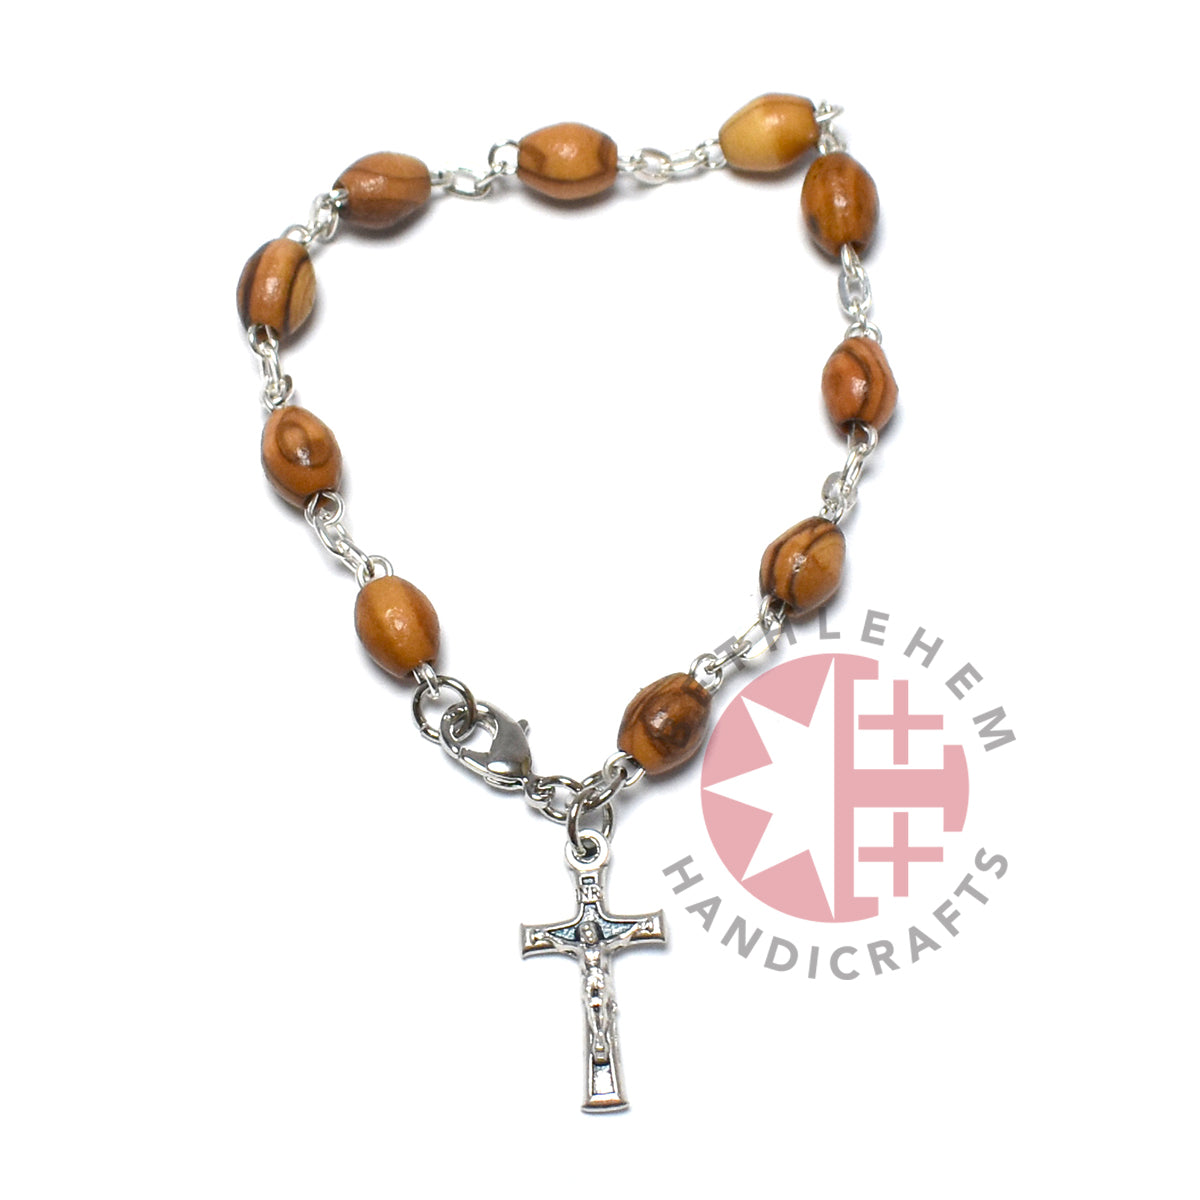 Olive Wood 8*6 mm Bracelet with Cross Pendant